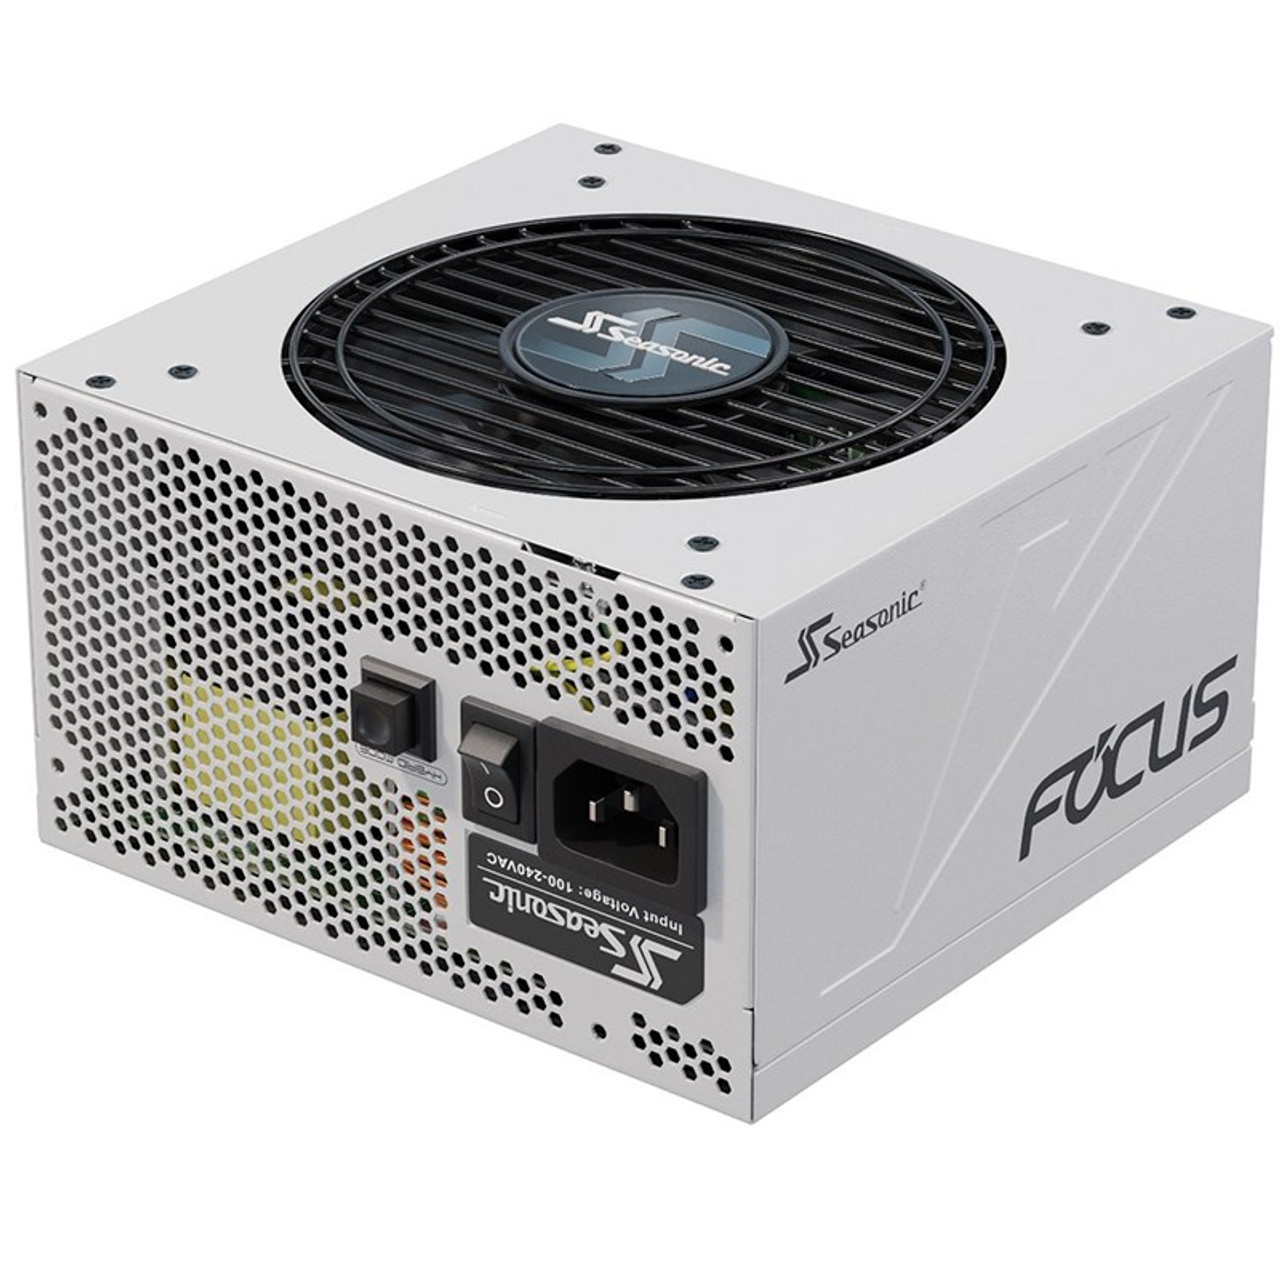 Image for Seasonic SSR-750FX WHITE Focus GX 750W 80+ Gold Fully Modular Power Supply CX Computer Superstore